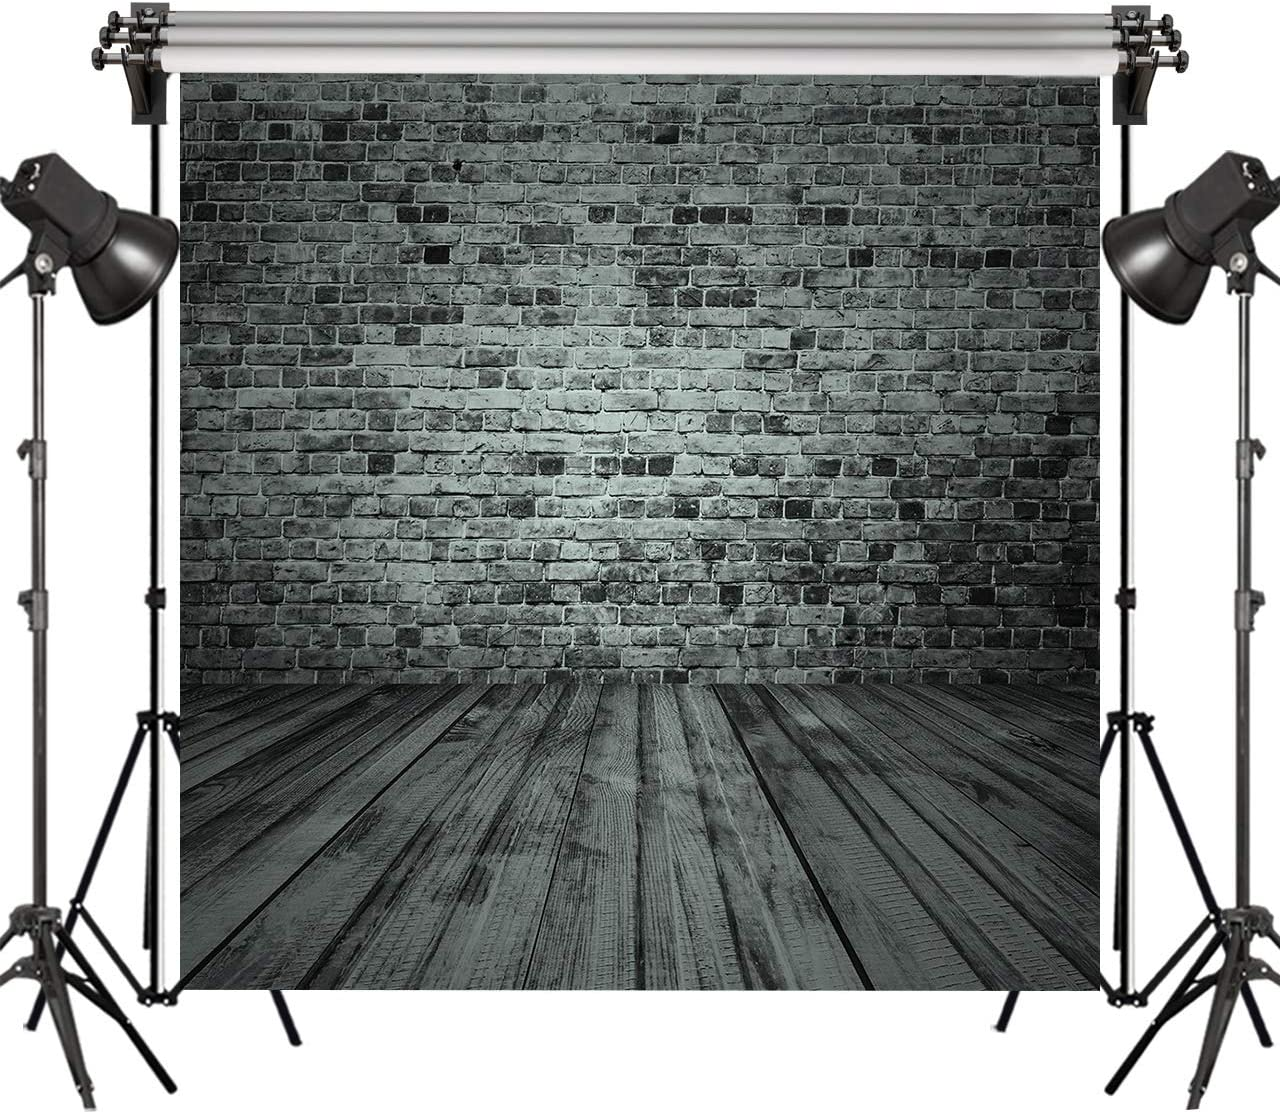 7x5 FT Vintage Brick Wall Photo Backdrops Wood Floor Photography Background for Wedding Party Portraits Photo Booth Backdrop 96-87